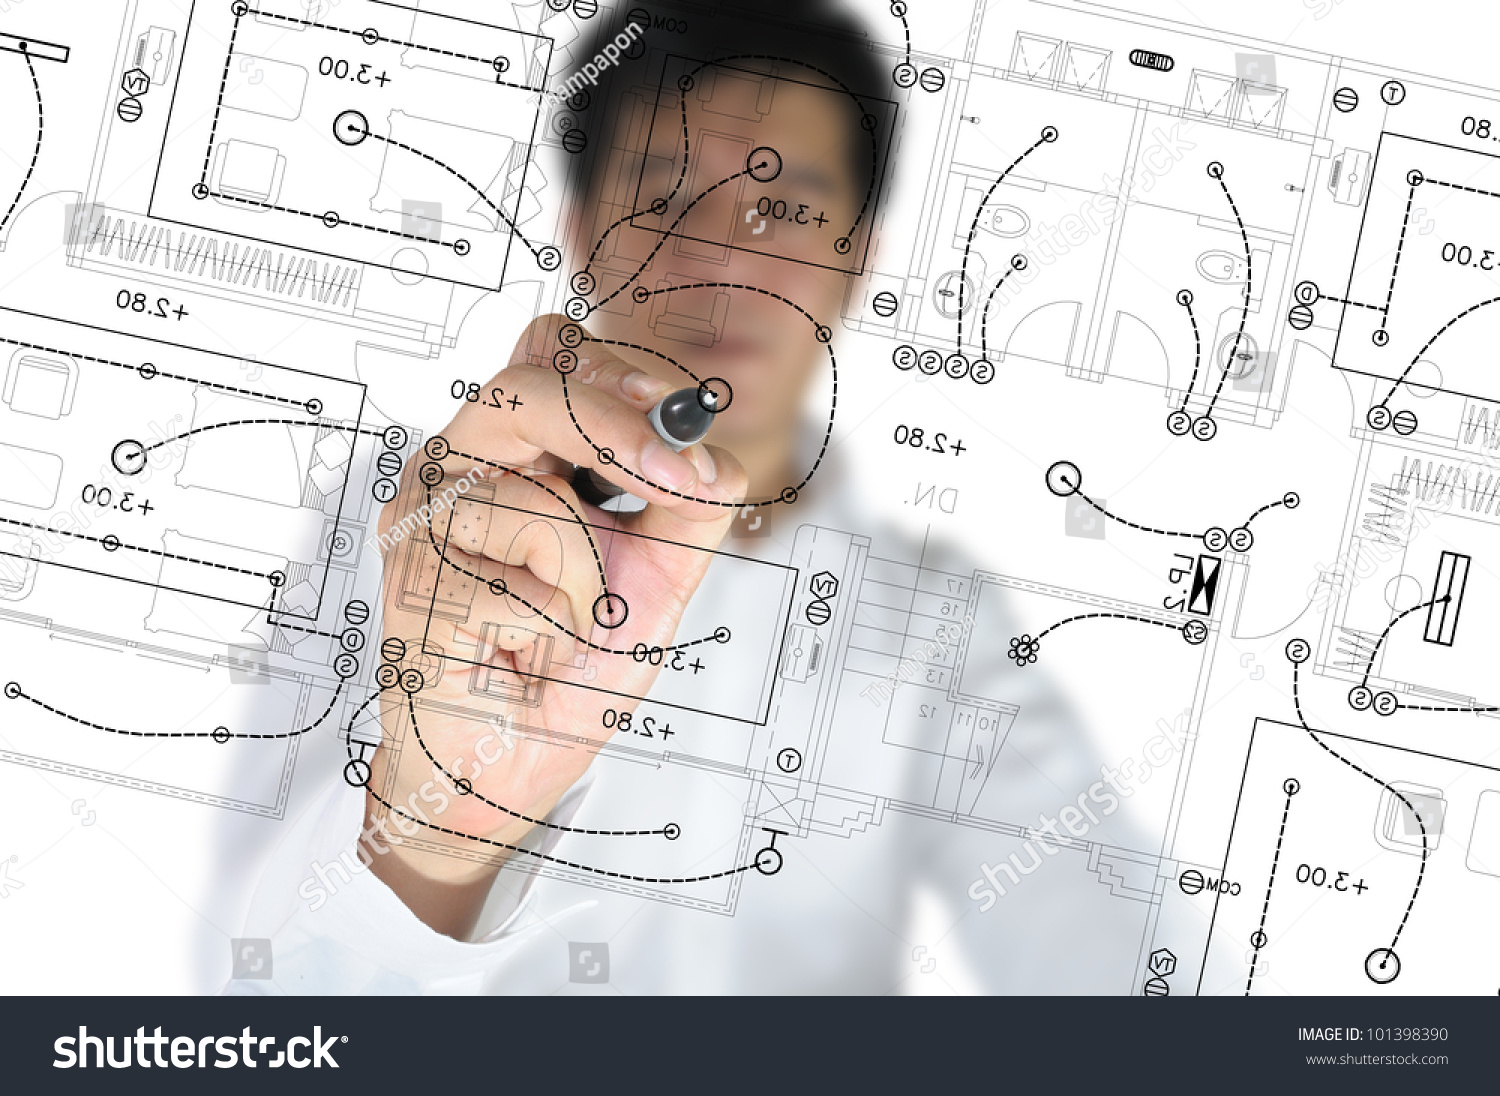 Hand Business Man Draw Architect Home Stock Photo 101398390 ...